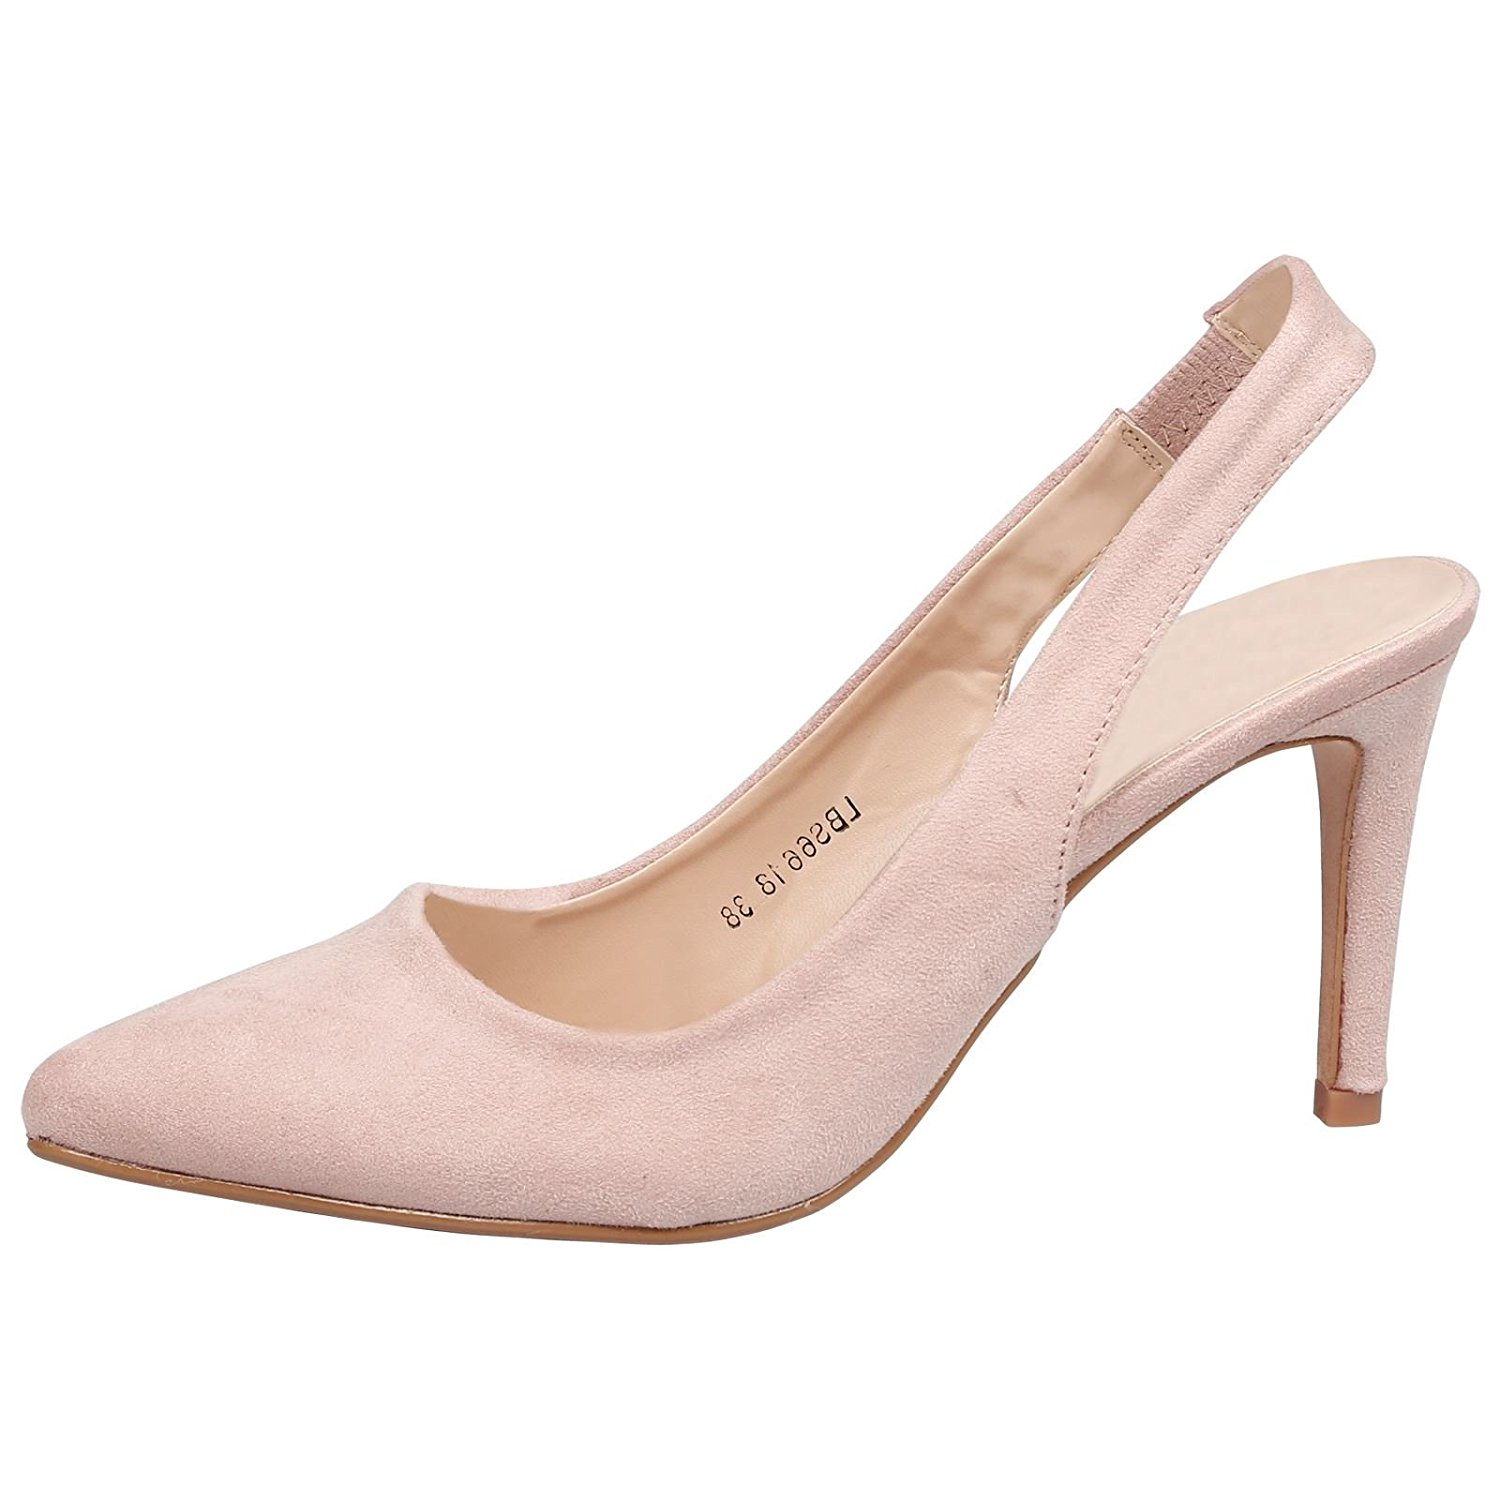 1c3f5e6639b Get Quotations · Feet First Fashion Prudence Womens High Heel Pointed Toe  Slingback Court Shoes